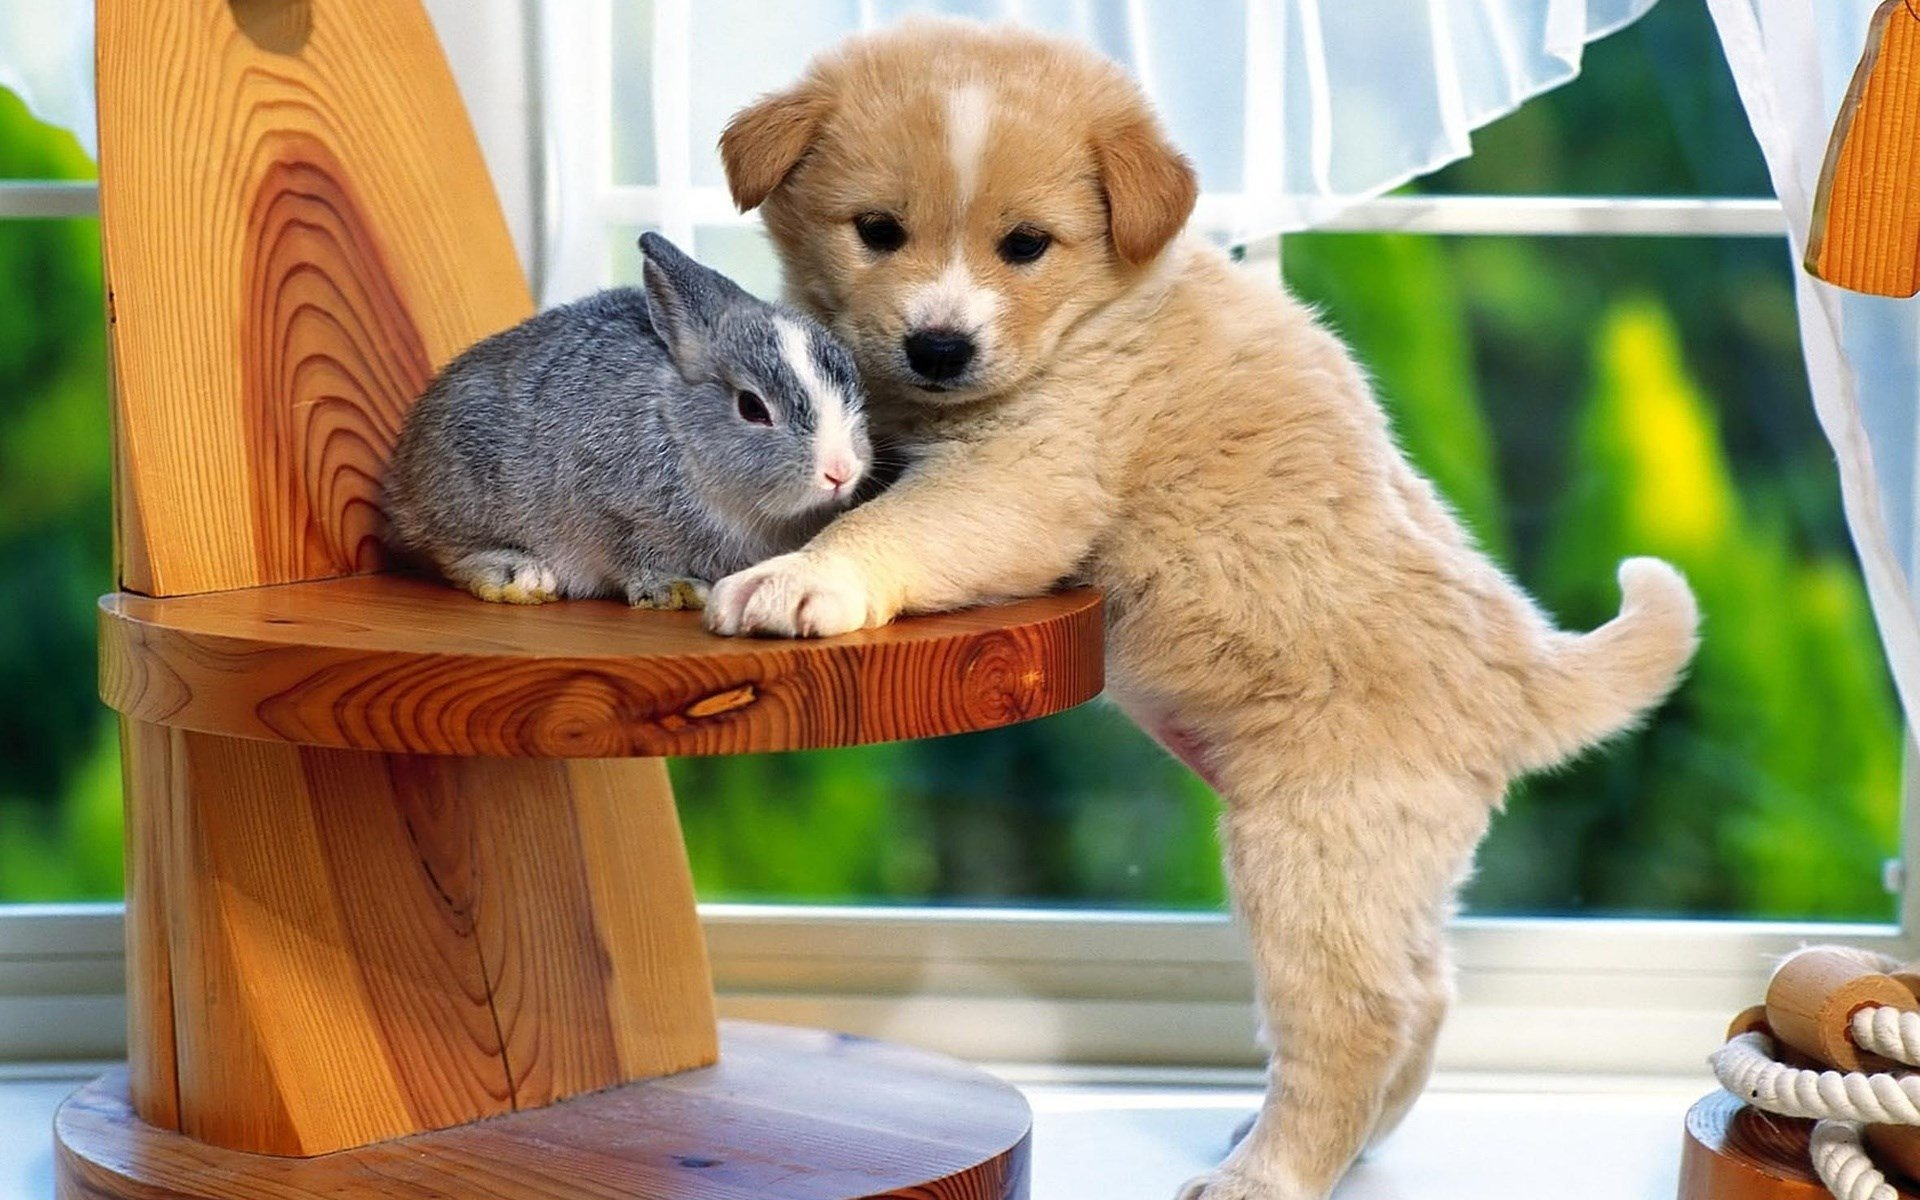 Animal - Cute  Dog Rabbit Wallpaper